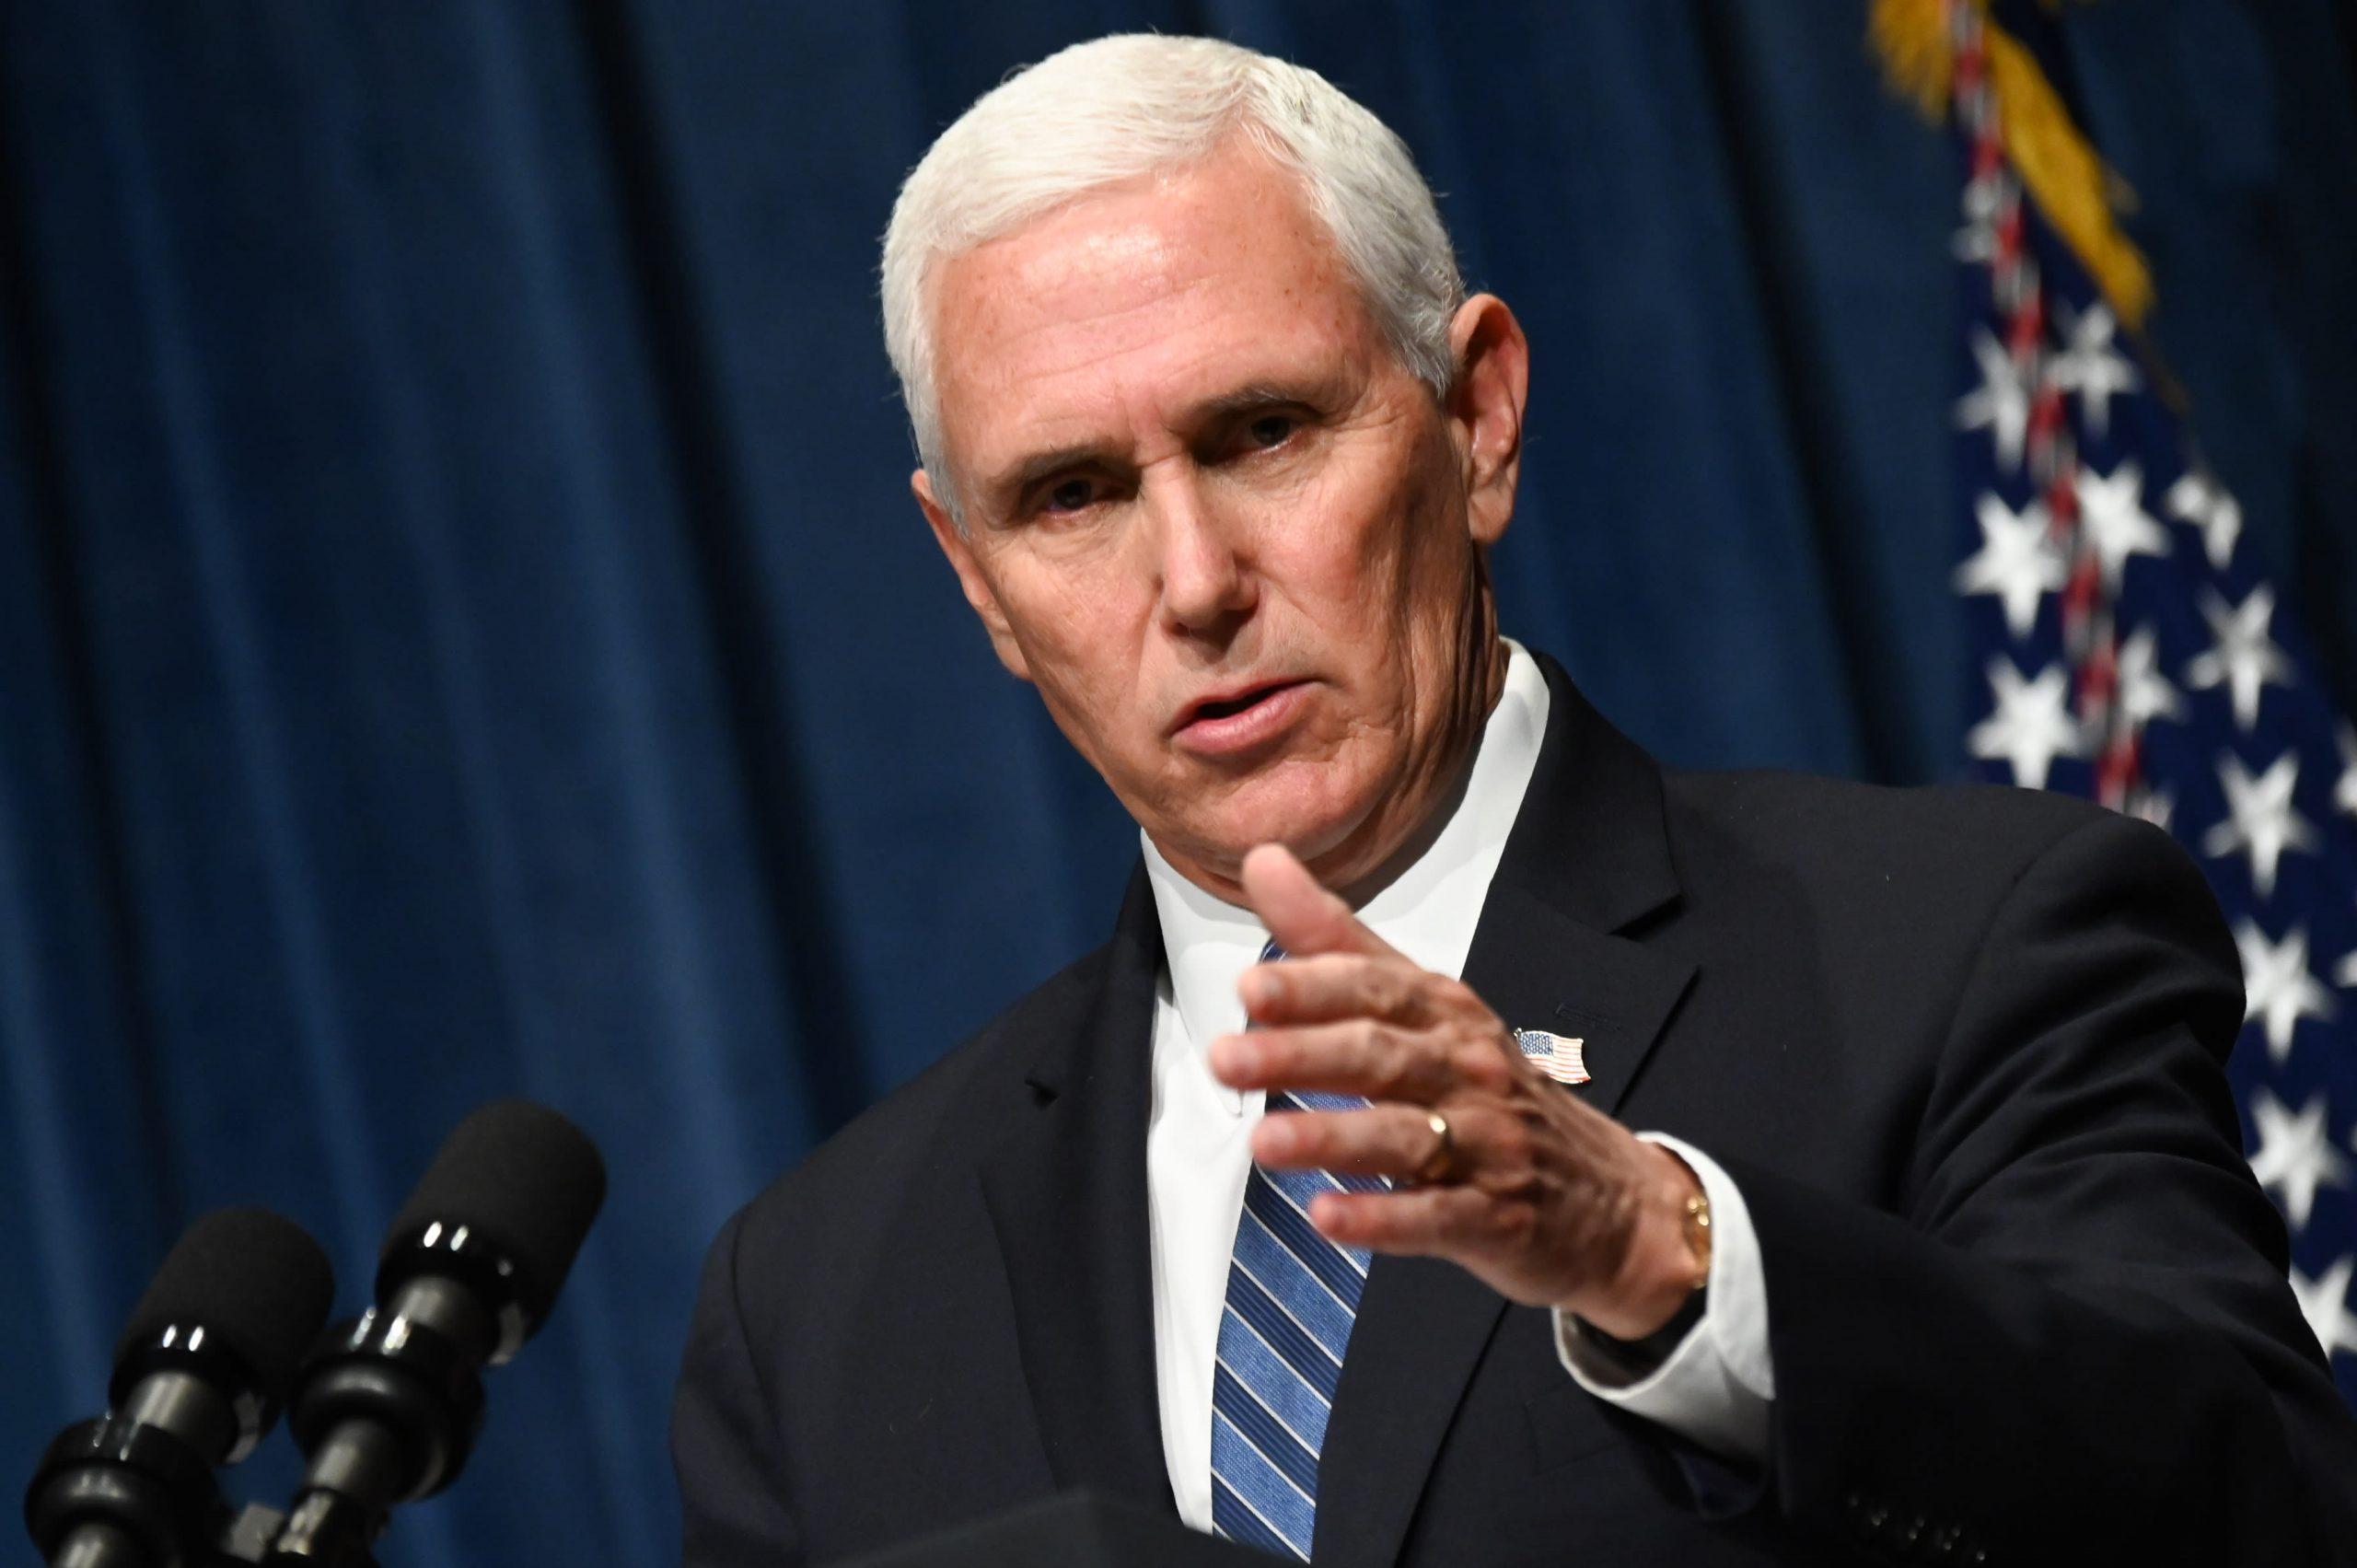 Pence vows to 'keep opening up America'